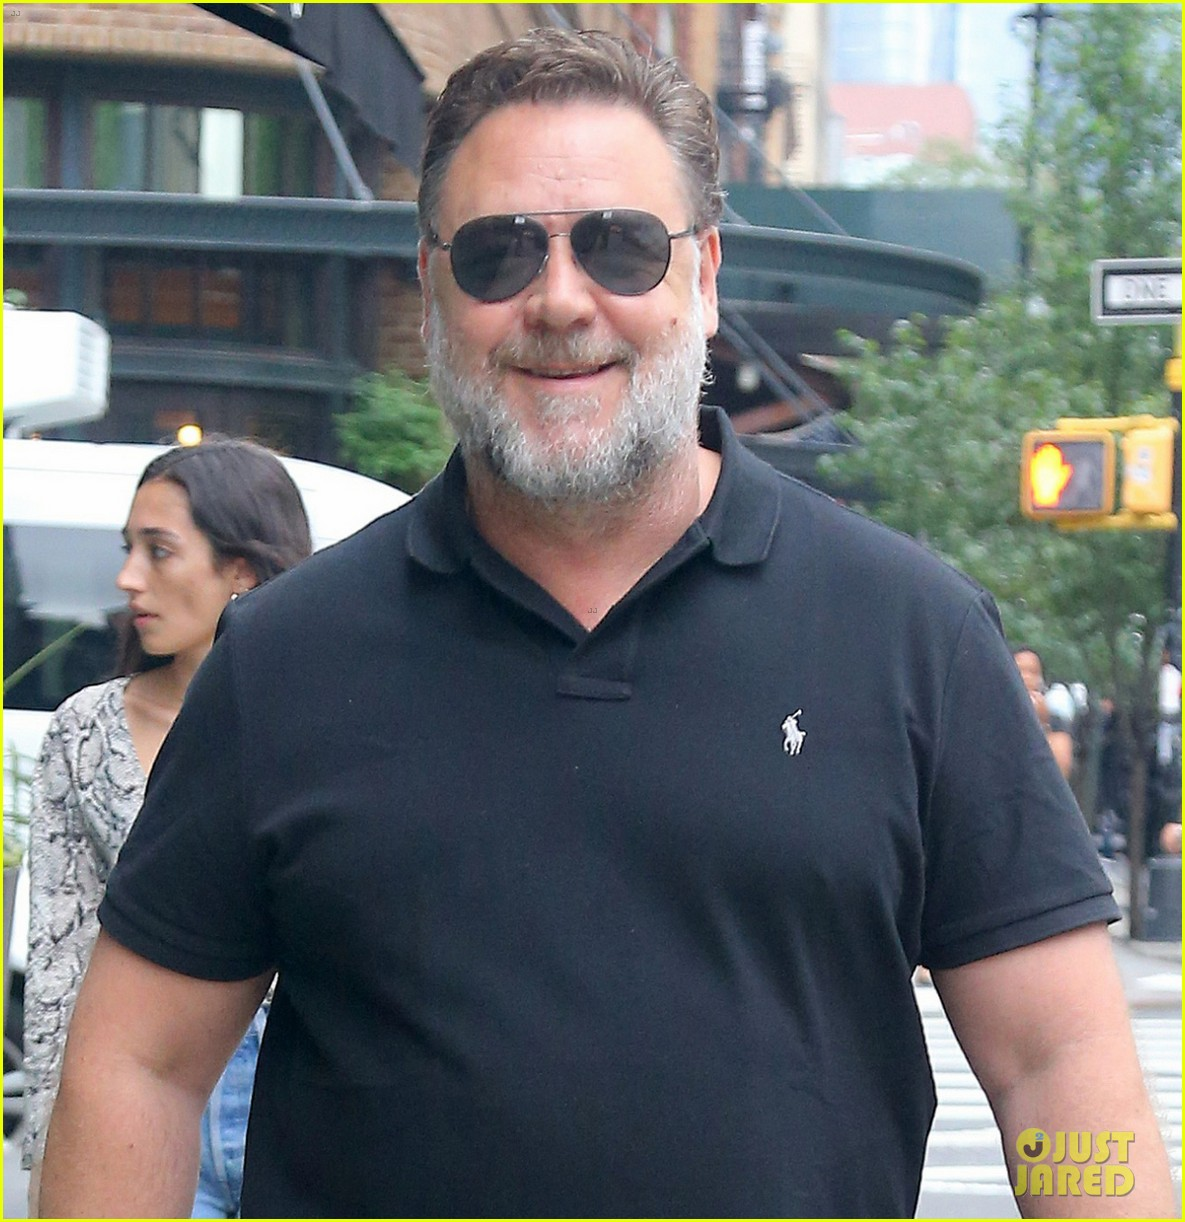 Russell Crowe Sports Full Beard While Promoting 'Loudest